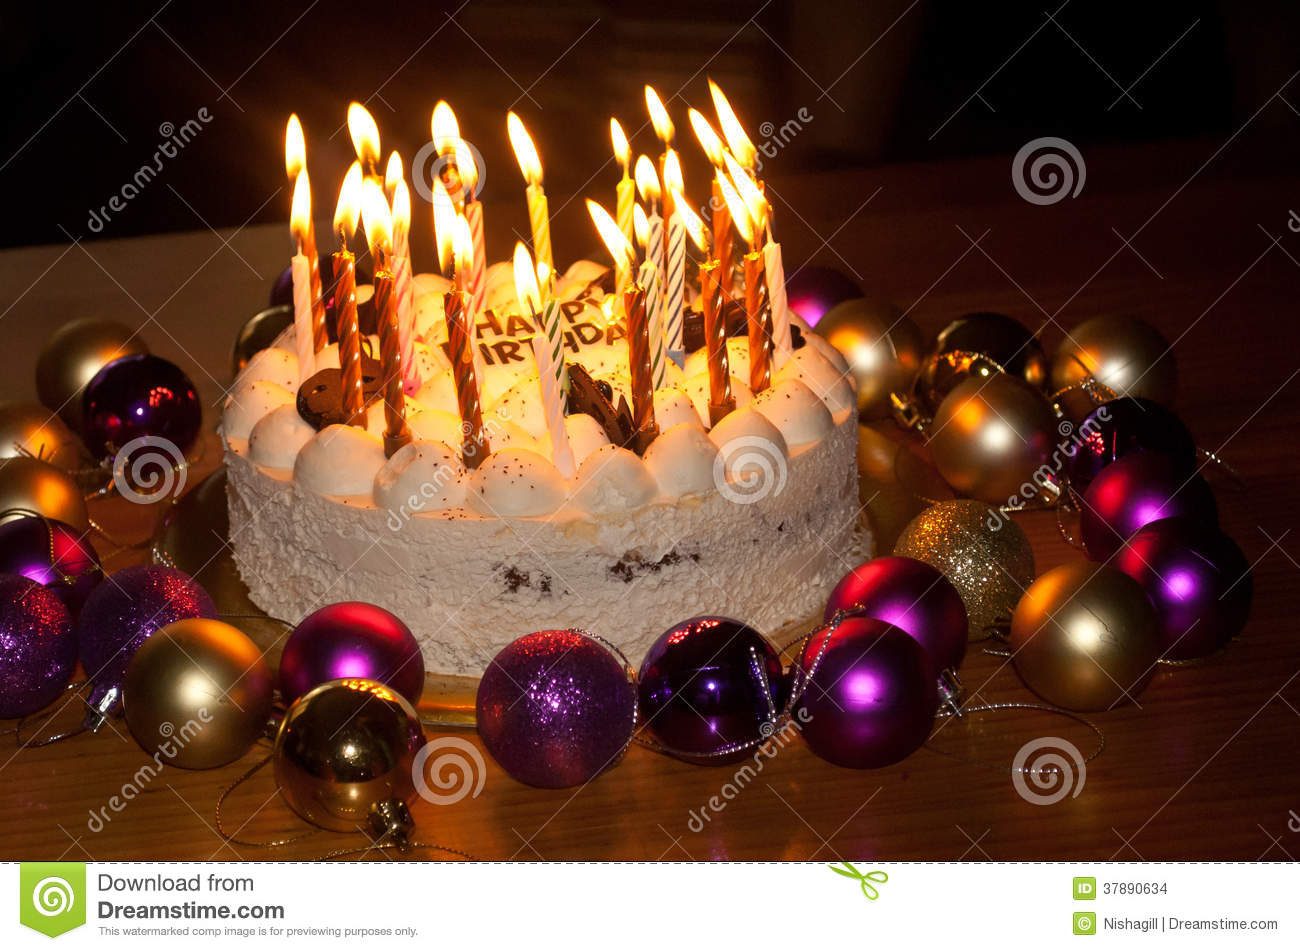 Happy Birthday Cake With Candles Birthday Cake With Burning Candles Stock Photo Image Of Party